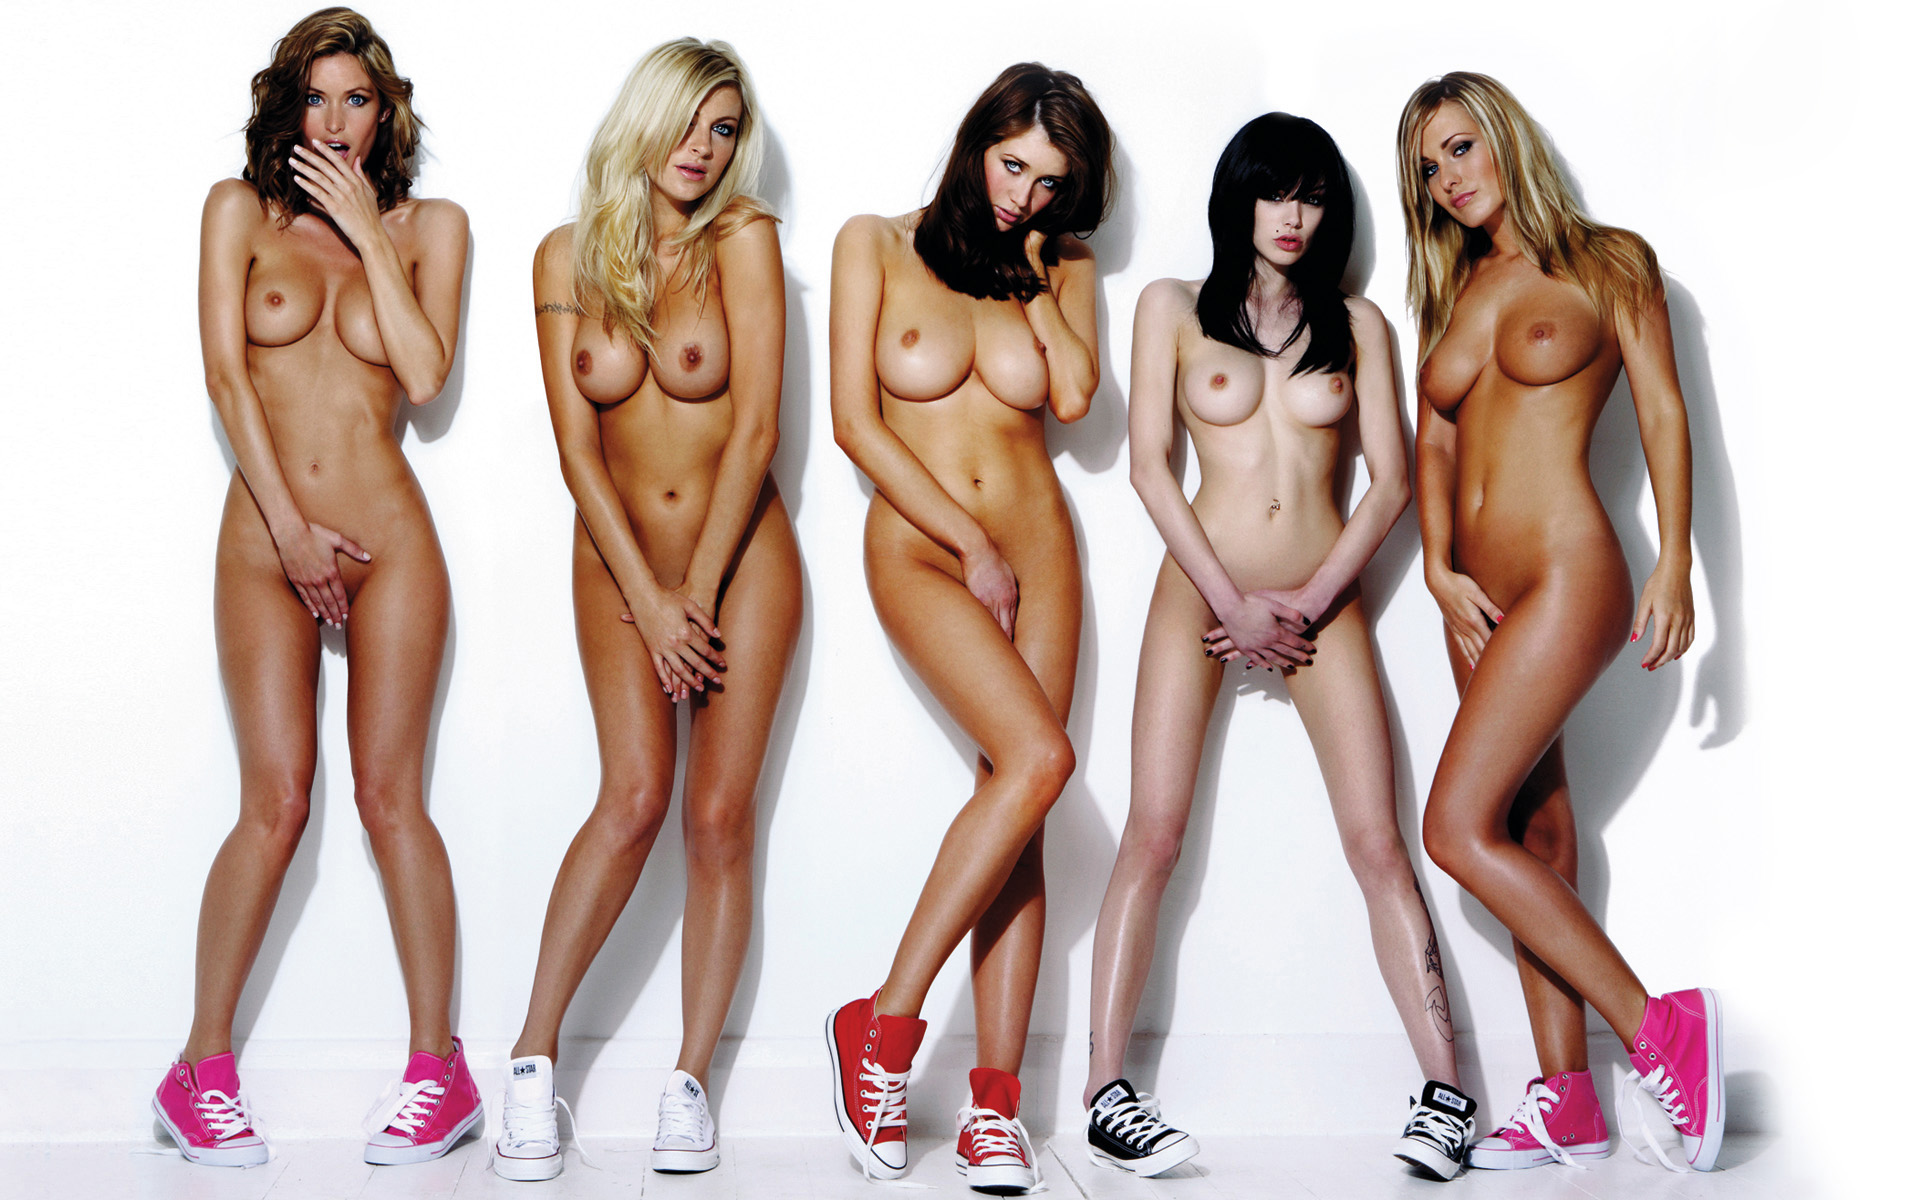 nude-girls-in-shoes-husband-and-wife-party-in-oamah